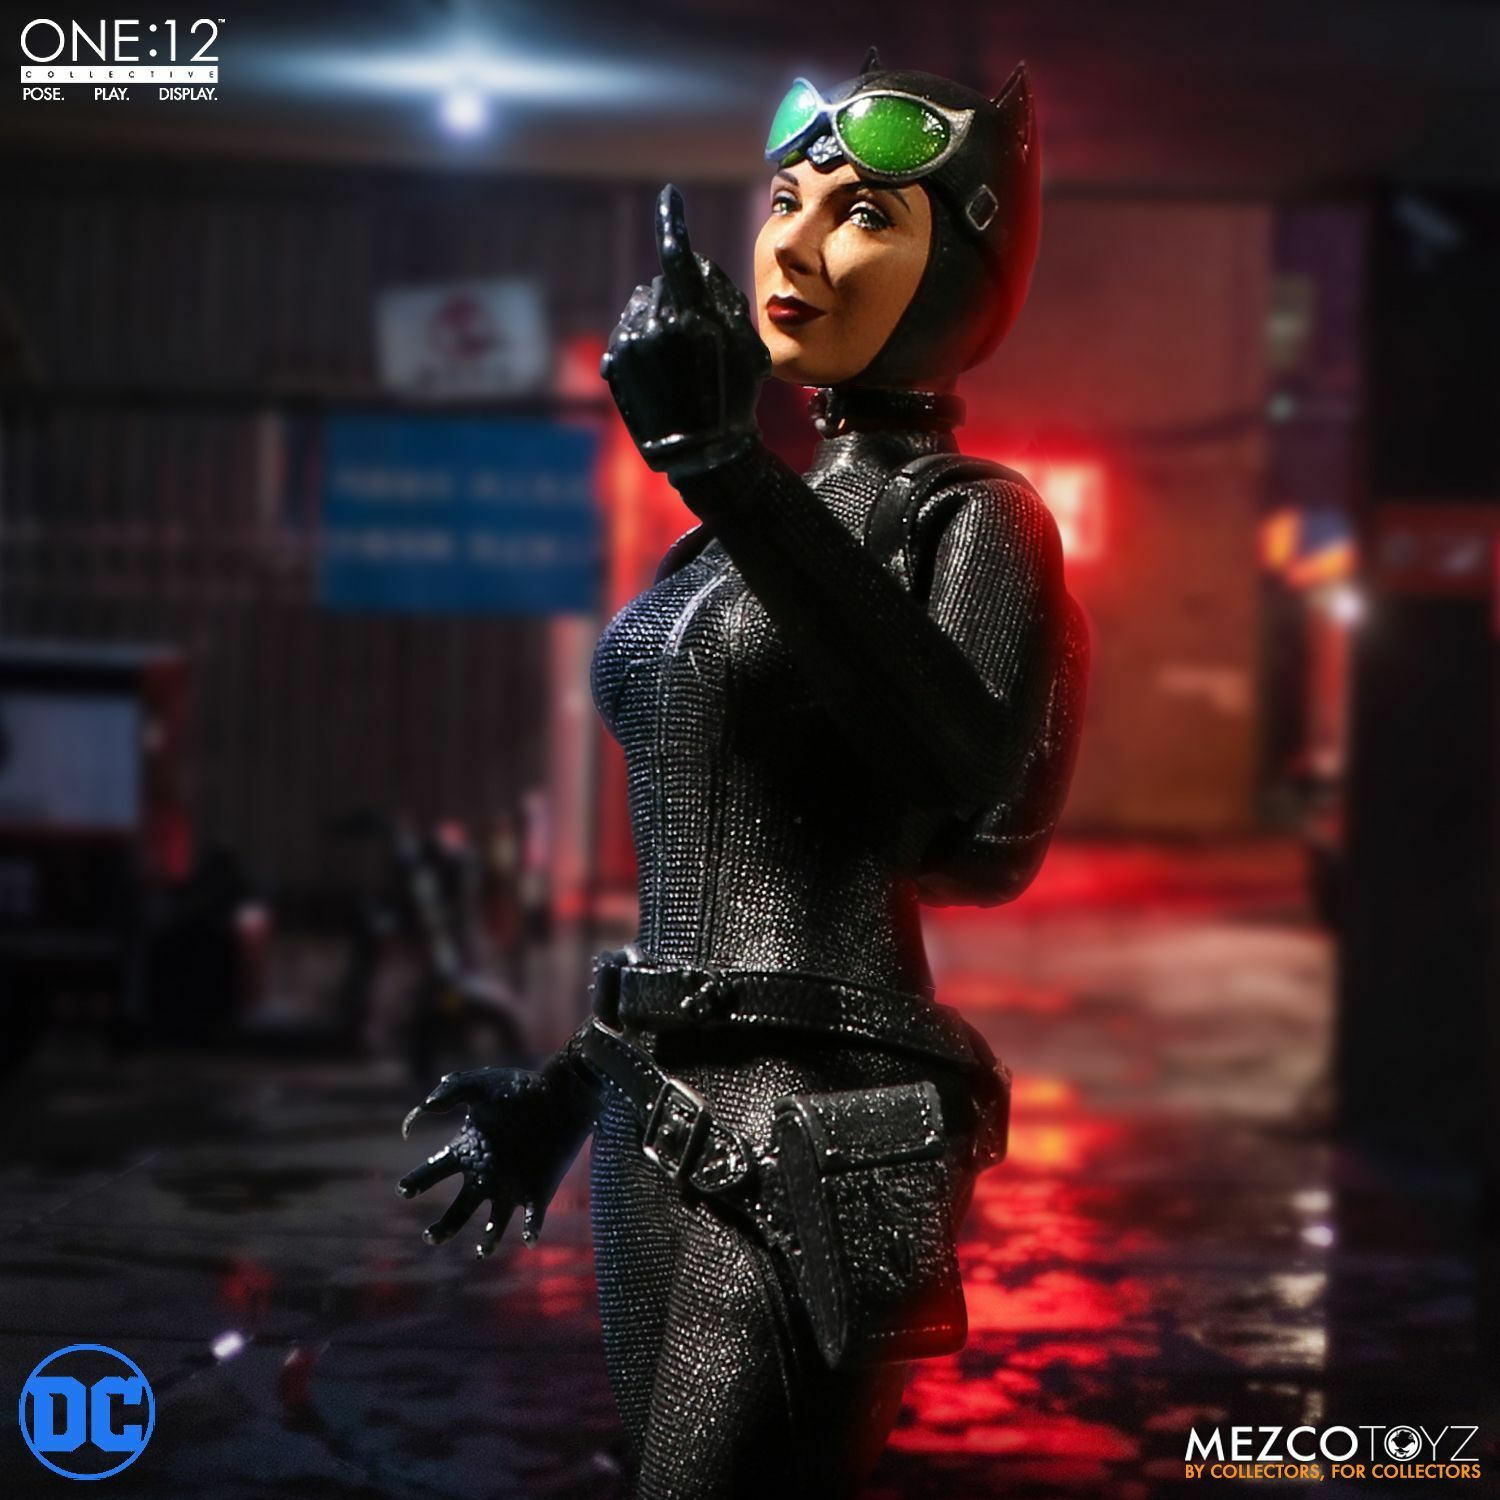 Mezco Spielzeugz One 12 Collective DC Comics Catwoman 1 12 Scale 6  Figure In Stock